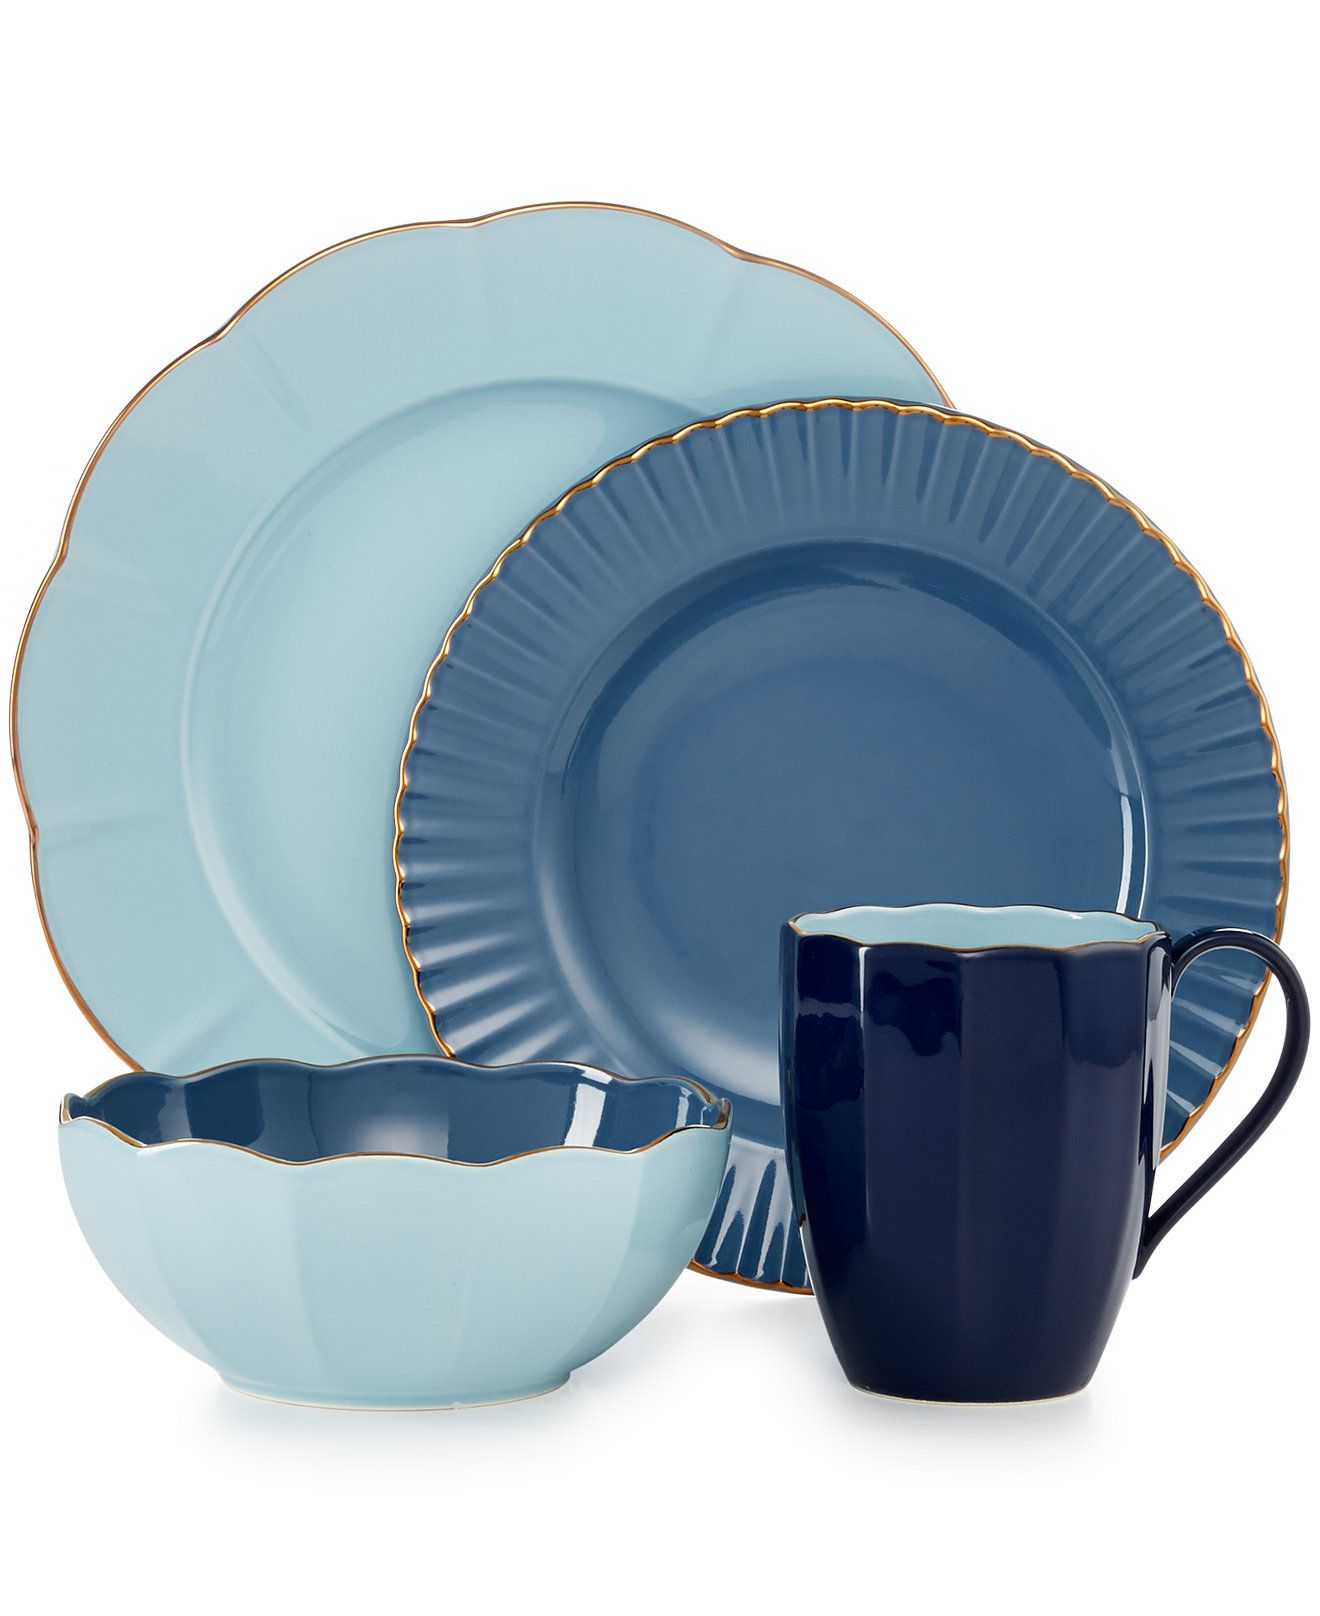 Marchesa by Lenox Dinnerware, Shades of Blue Collection - Dinnerware - Dining & Entertaining - Macy's